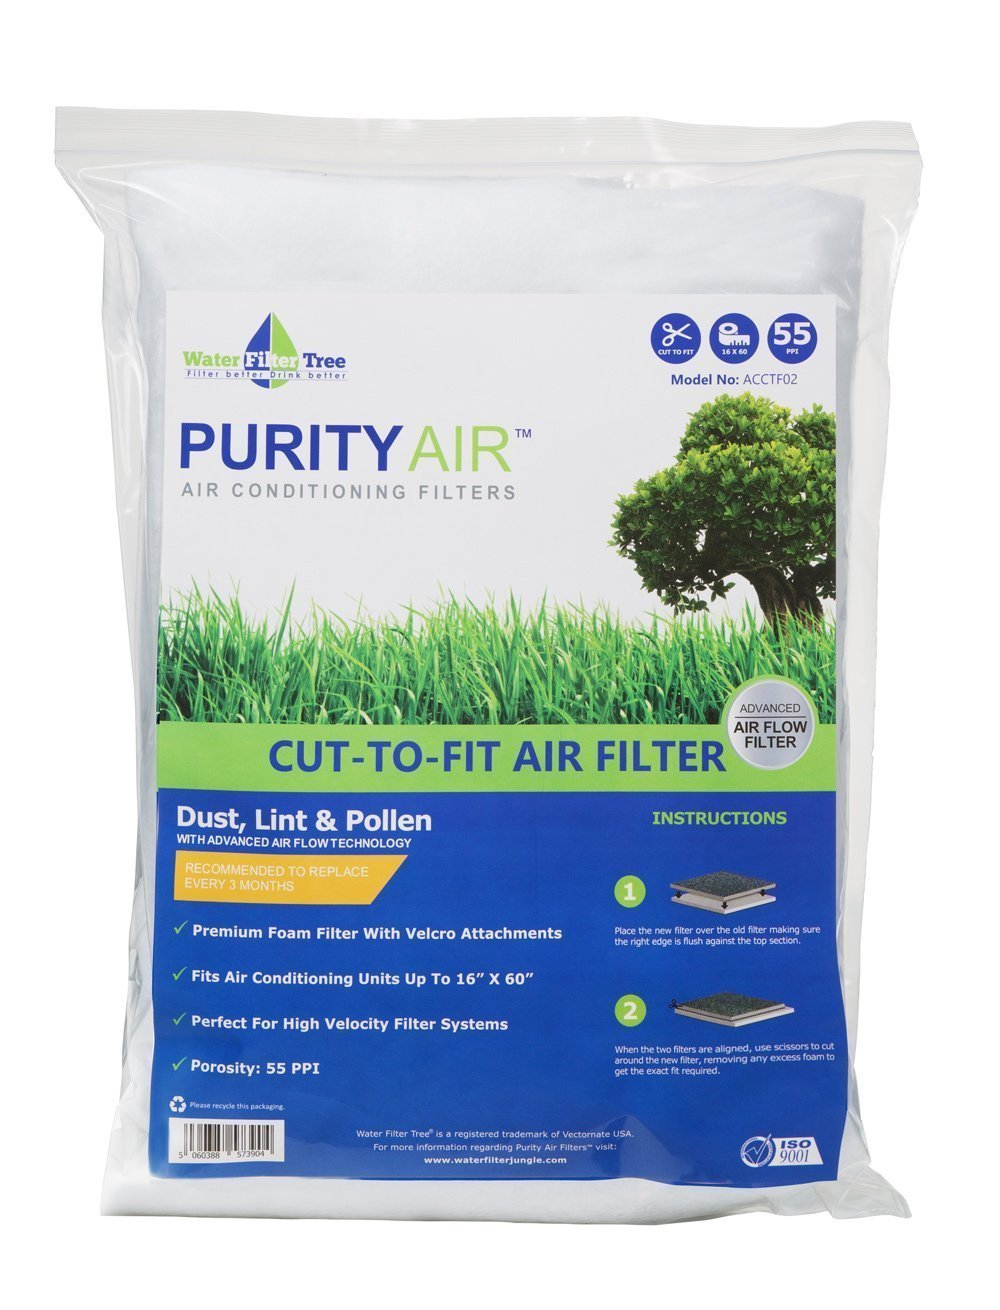 Purity Air Cut-to-Fit Carbon Air Filter: (16x60) 3-Pack, Fits Air Conditioner A/C, Air Purifier, Hood Vent, Air Vent & Ventilation Filters - Non-Woven (ACCTF02)